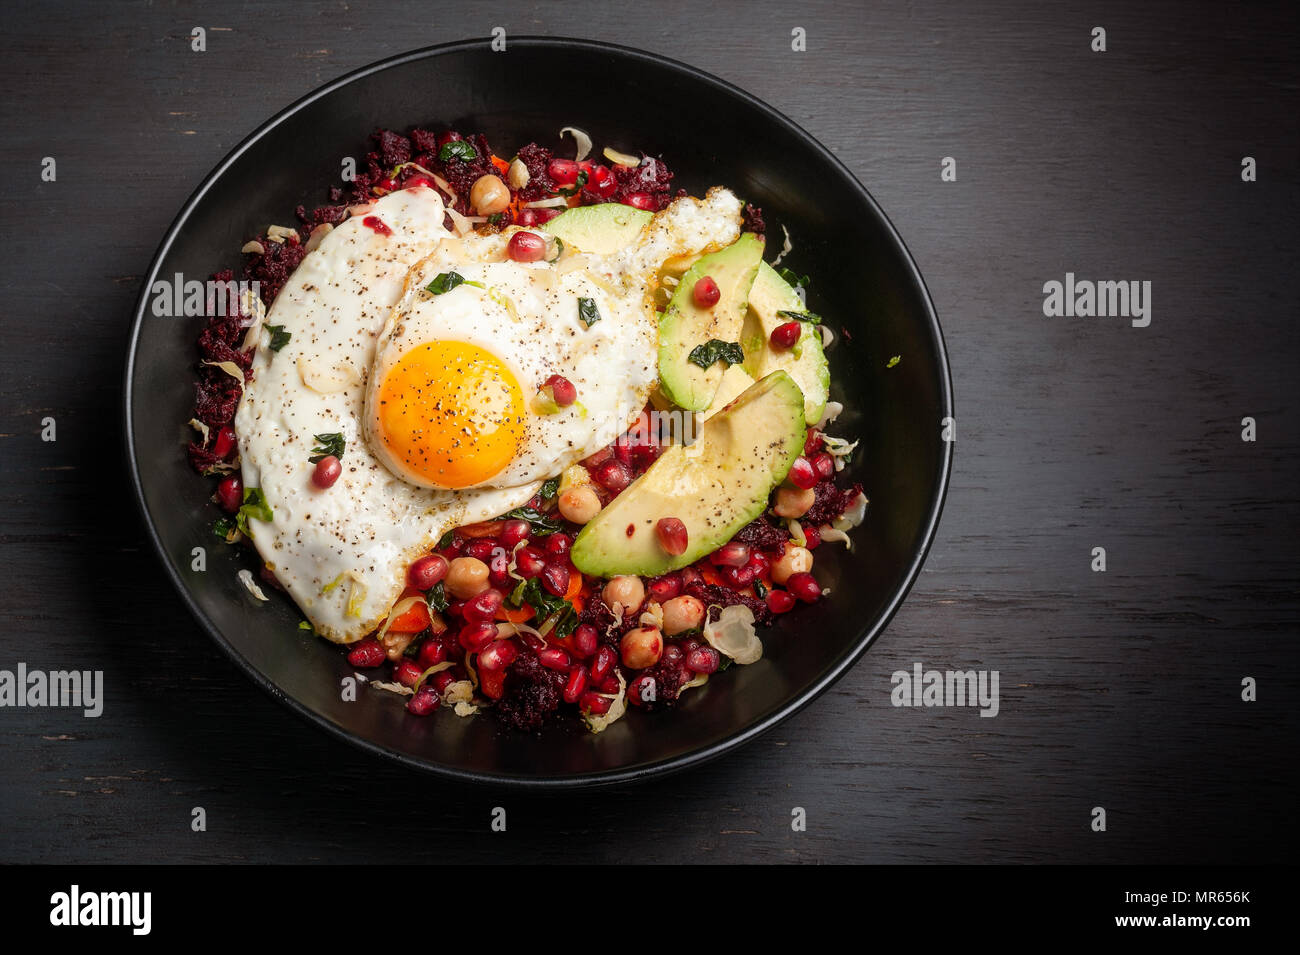 Miso veggie breakfast bowl made with beets, carrots, brussels sprouts, kale, chickpeas and topped with pomegranate seeds, avocado and egg. - Stock Image